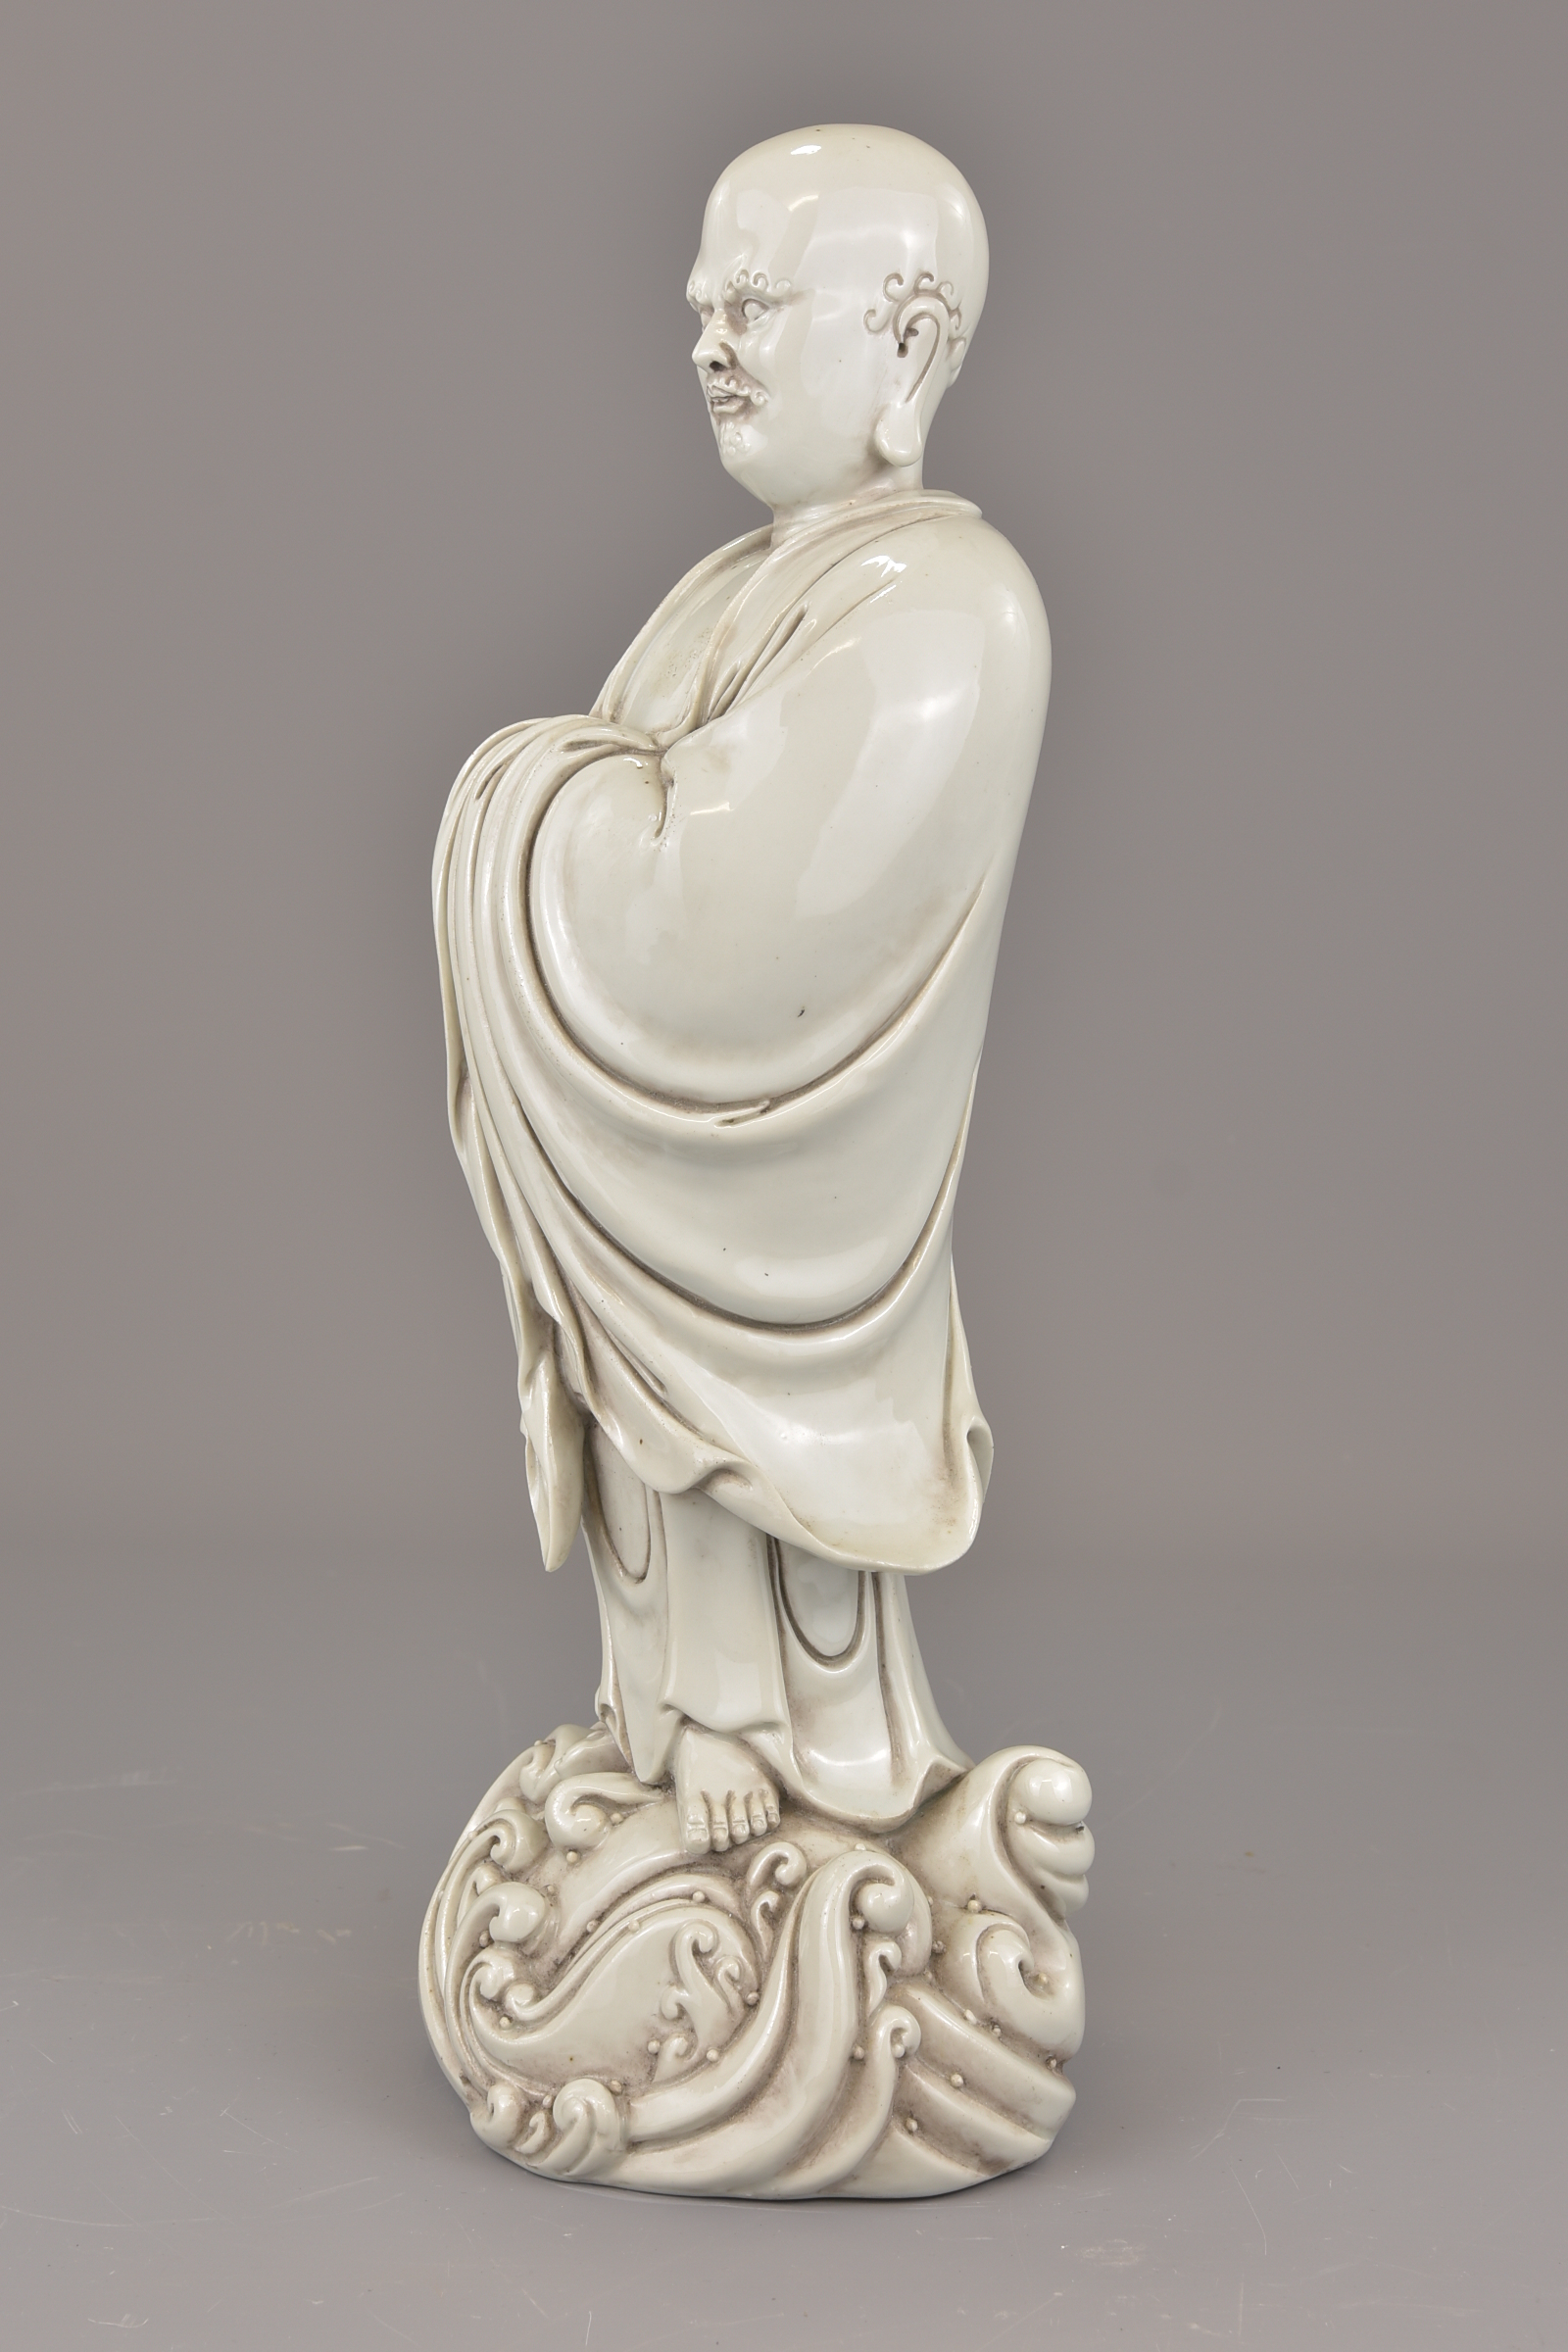 Lot 13 - A Chinese 19th century Blanc de Chine porcelain figure of Luohan with four character temple name to